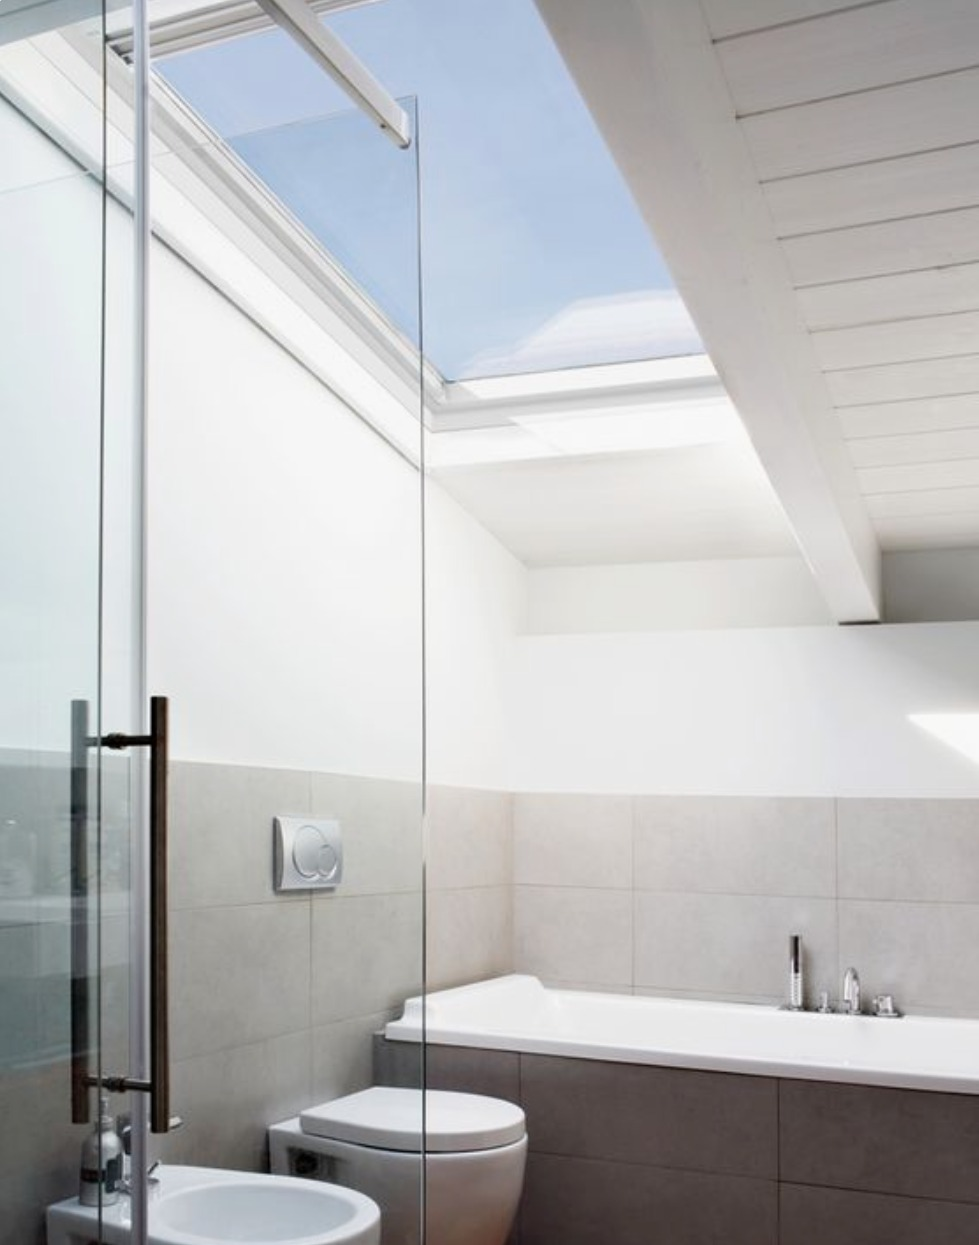 Loft conversion tips - how to use VELUX roof windows in a bathroom extension to create a bright family space